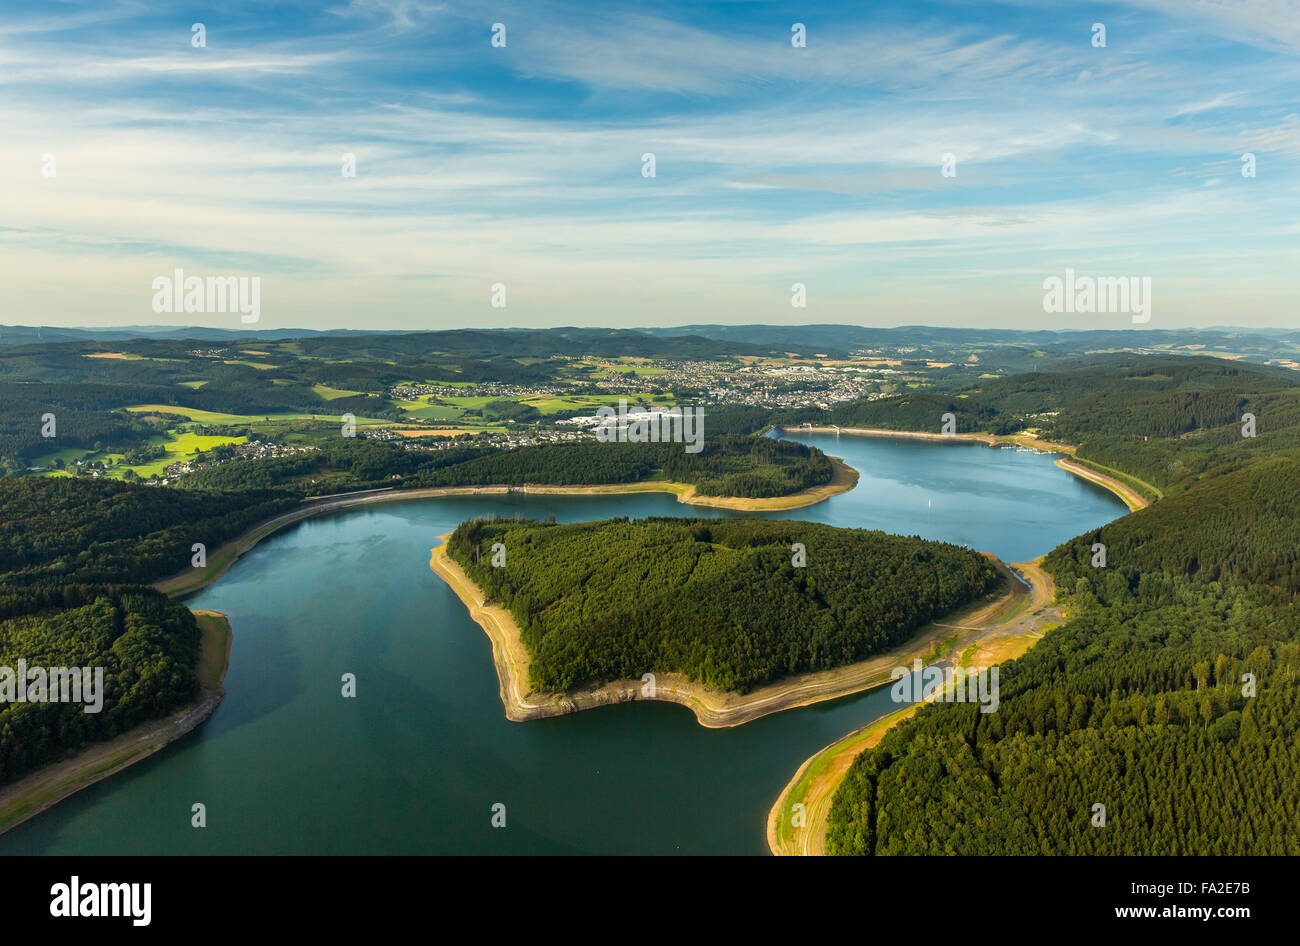 Aerial view, Gilberginsel, lowered water levels in the Biggetalsperre to repair the Felsschuettdammes - Stock Image